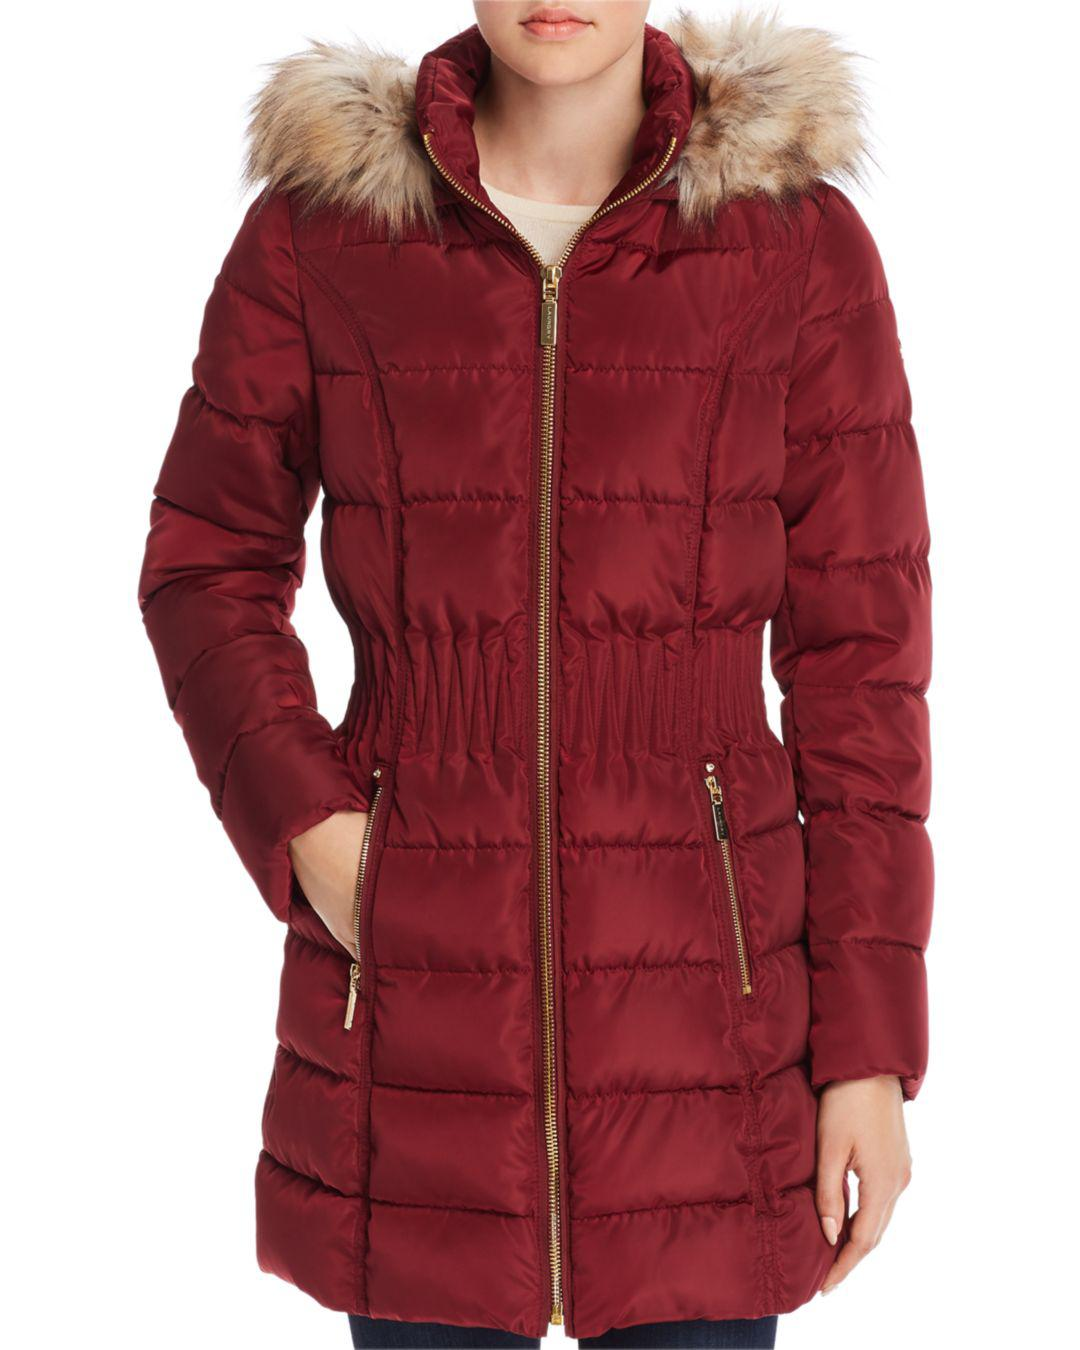 Laundry By Shelli Segal Windbreaker Faux Fur Trim Cinched